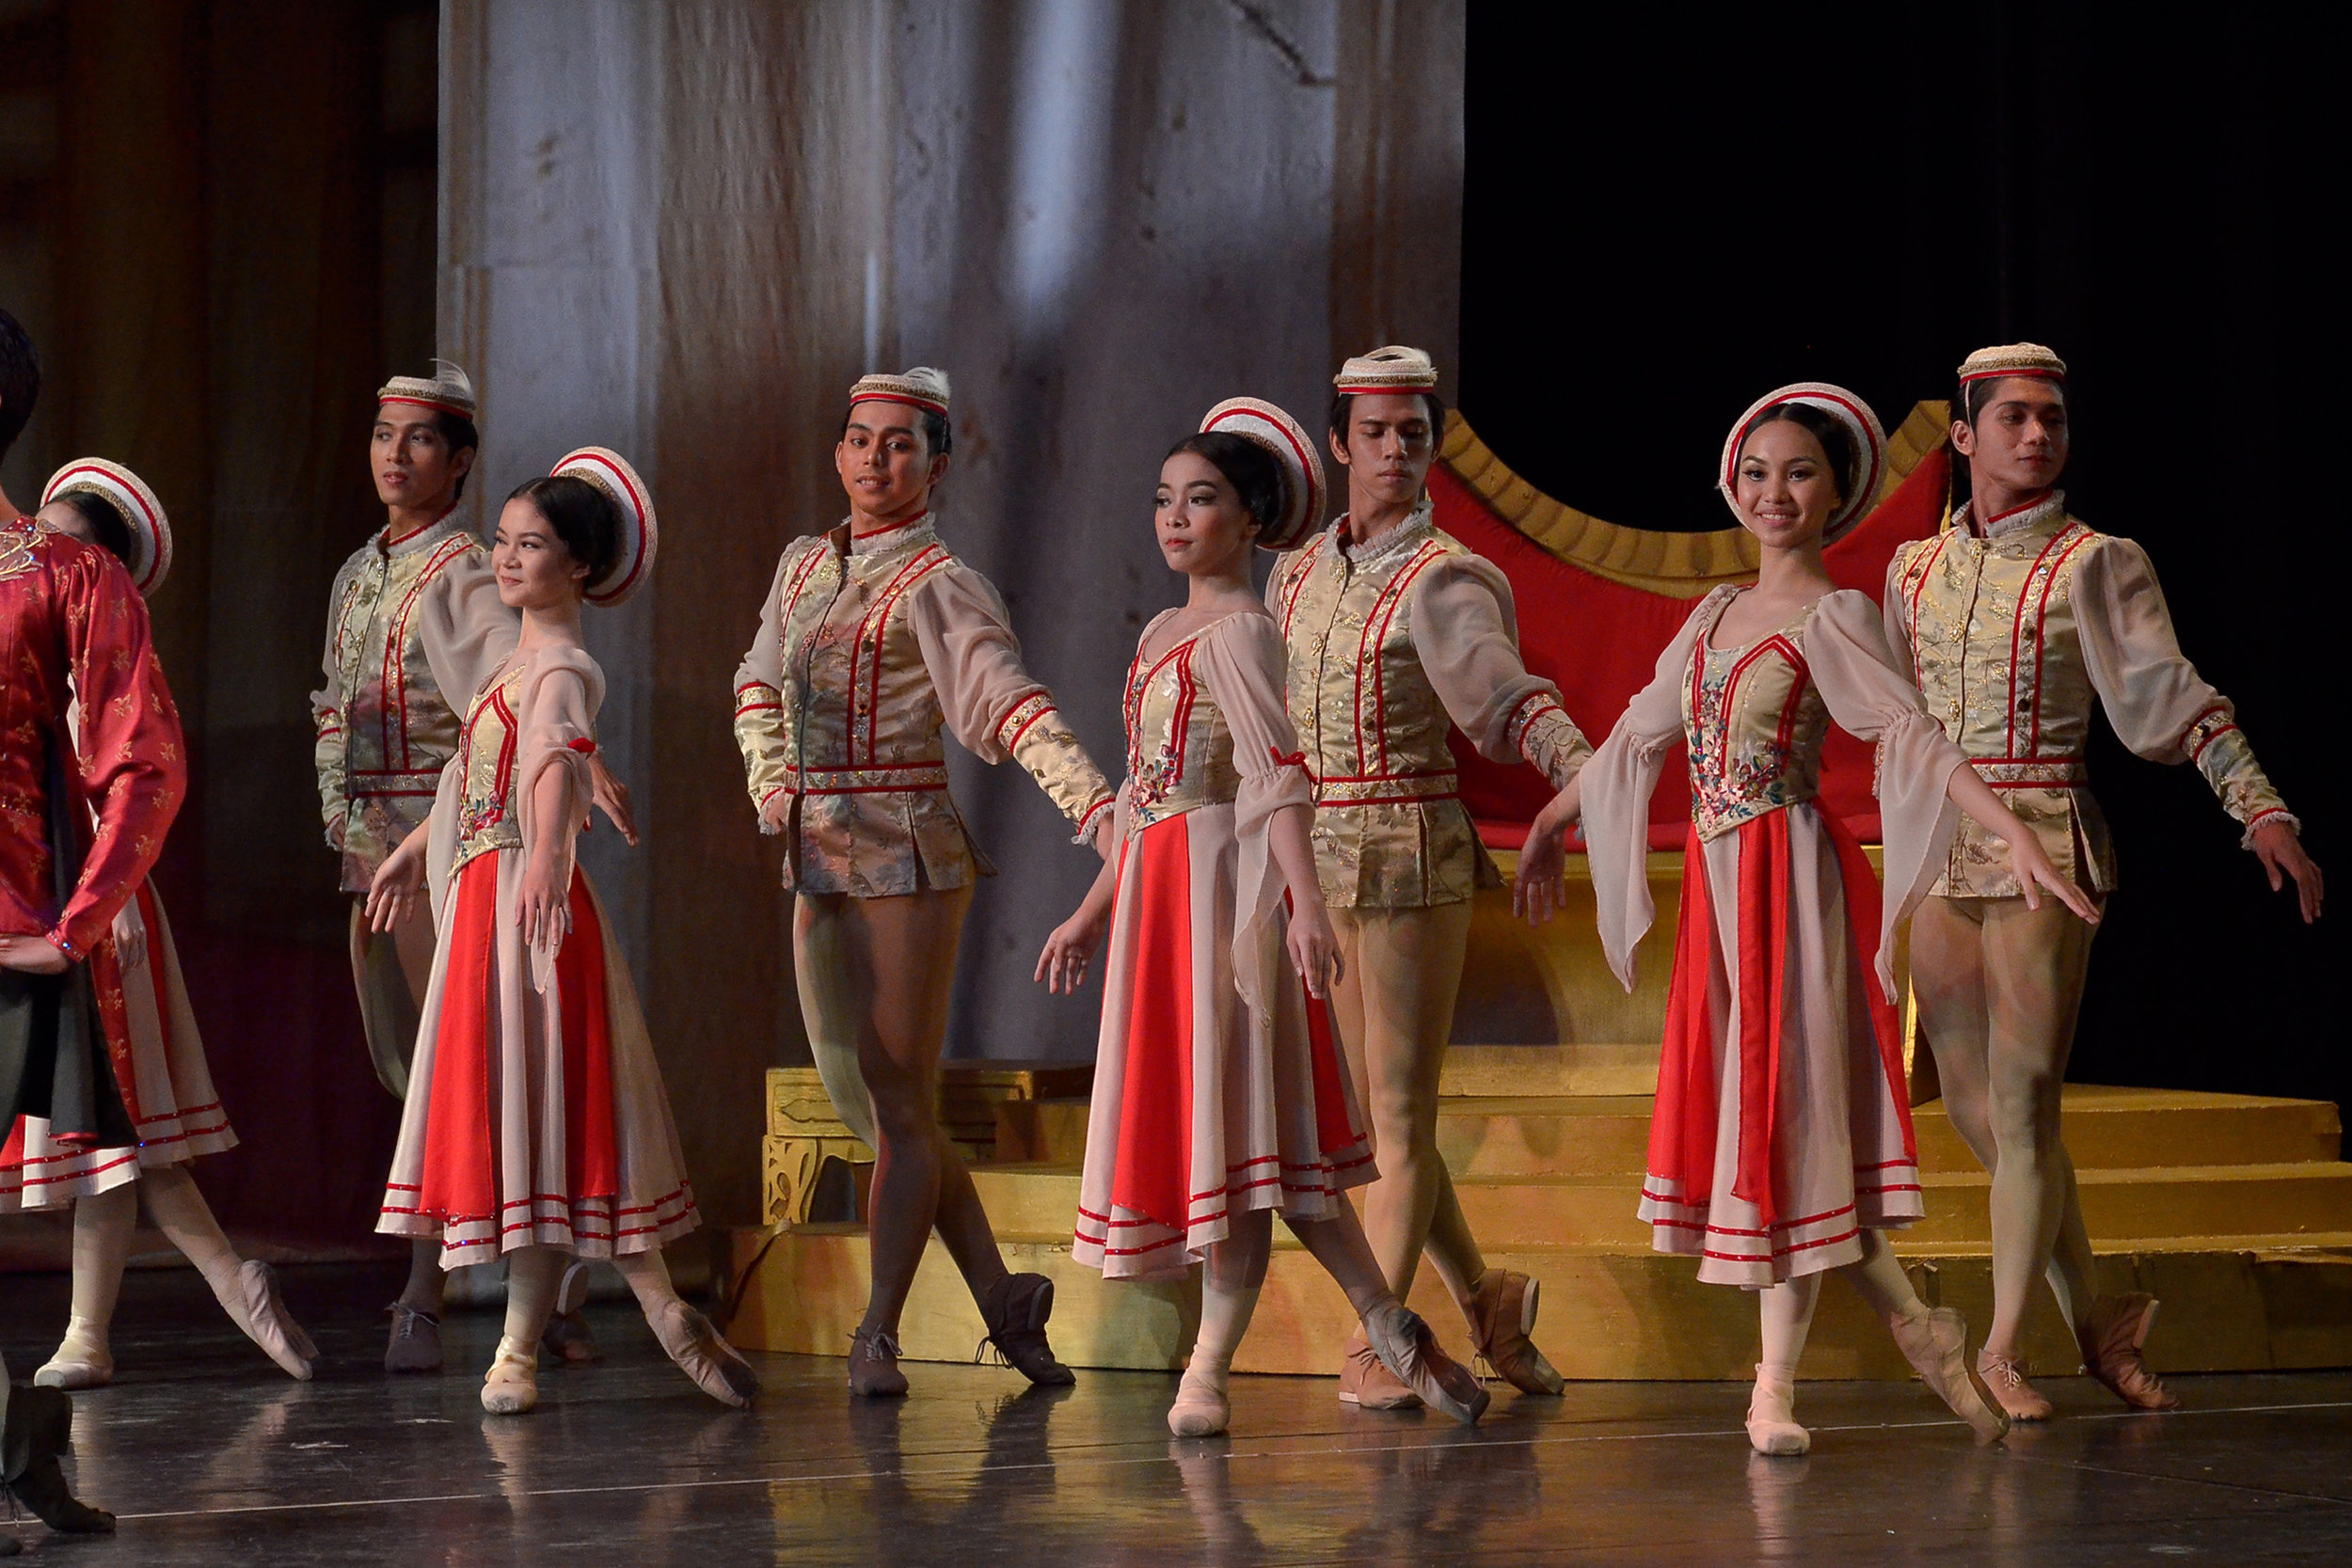 Sean (third from left) in another scene from the ballet classic    Swan Lake   . Photo by Ocs Alvarez